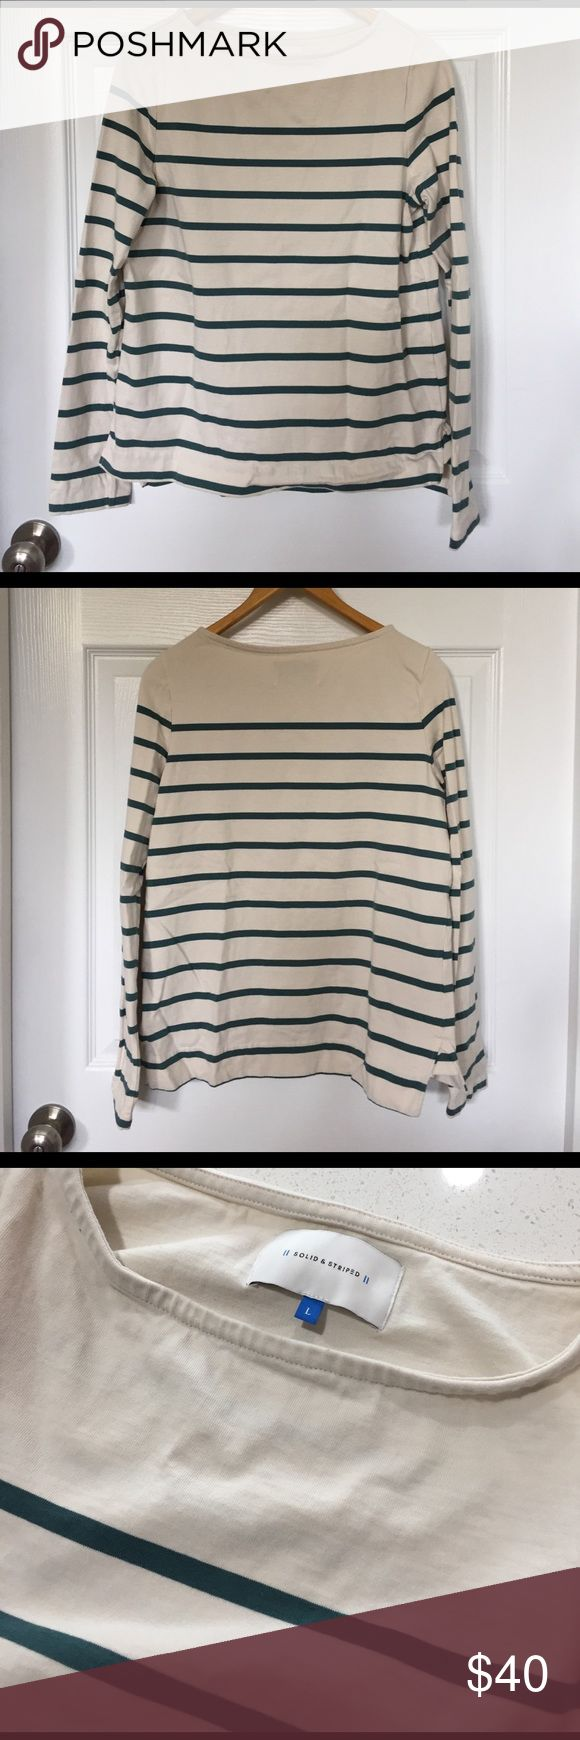 "Solid & Striped Breton boat neck tee Solid & Striped ""The Breton"" boat neck long sleeved striped shirt in cream & aspen stripe, size L, EUC. Purchased from ShopBop, worn twice. Material is heavyweight - it's more like a rugby shirt. Please note that this brand runs a bit small. ShopBop Tops Tees - Long Sleeve"